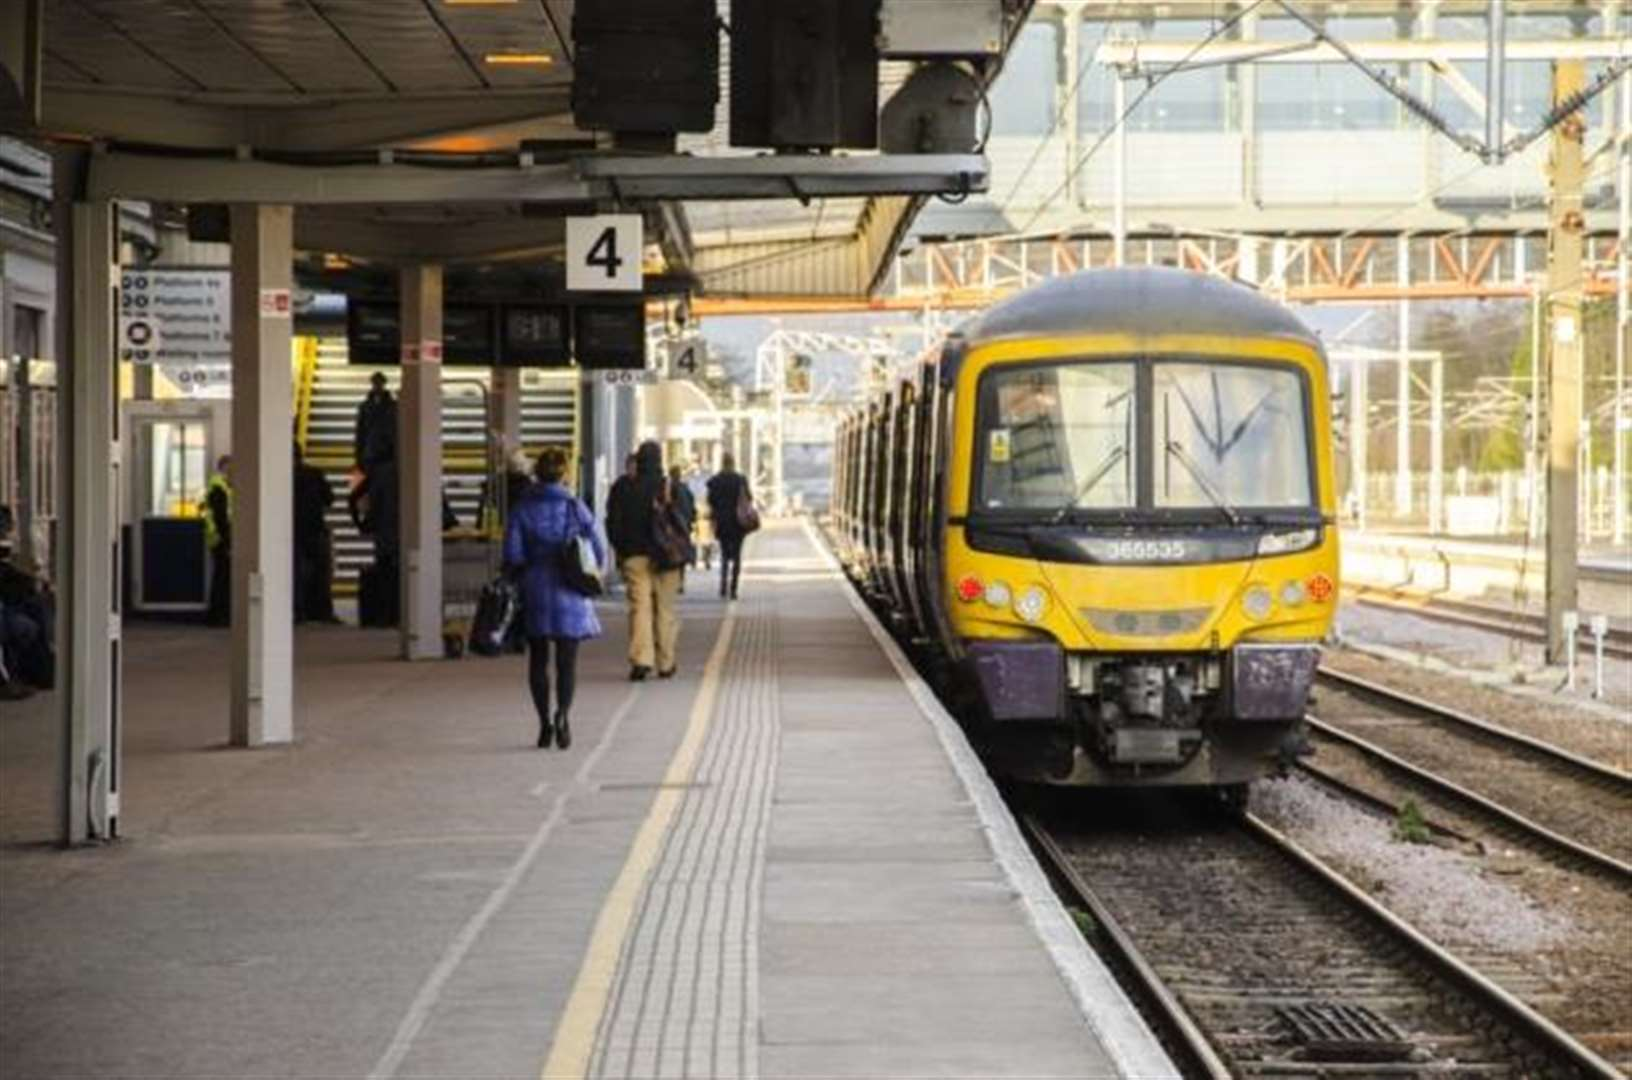 Cambridge commuters could be in line for compensation payouts